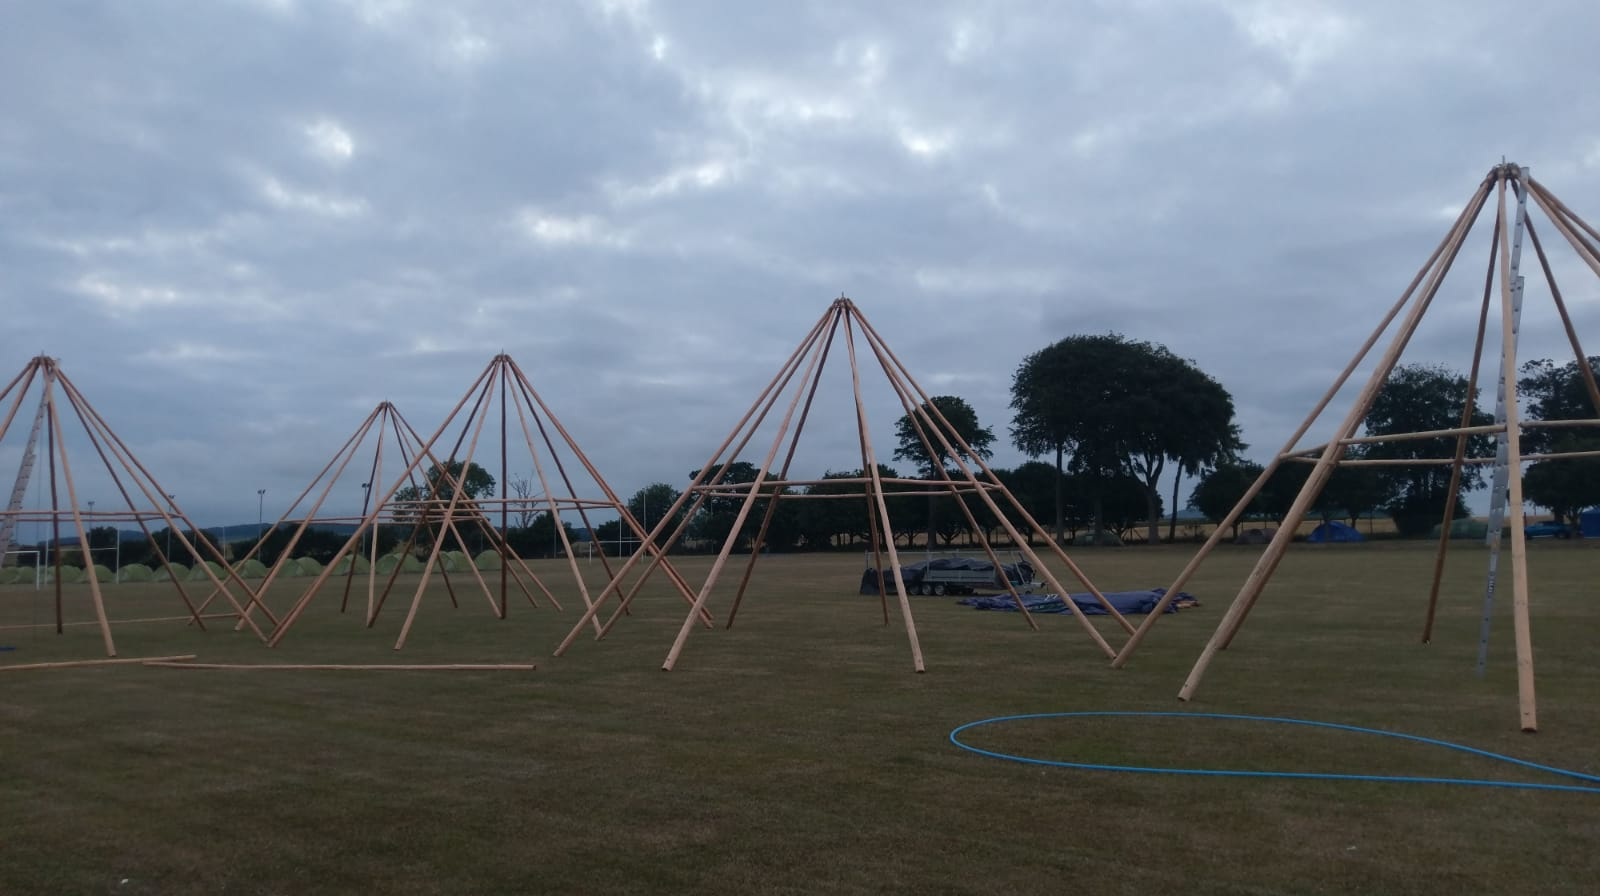 Something magical about just the Tipi Frames - geometry fans loving The Open Camping Village build